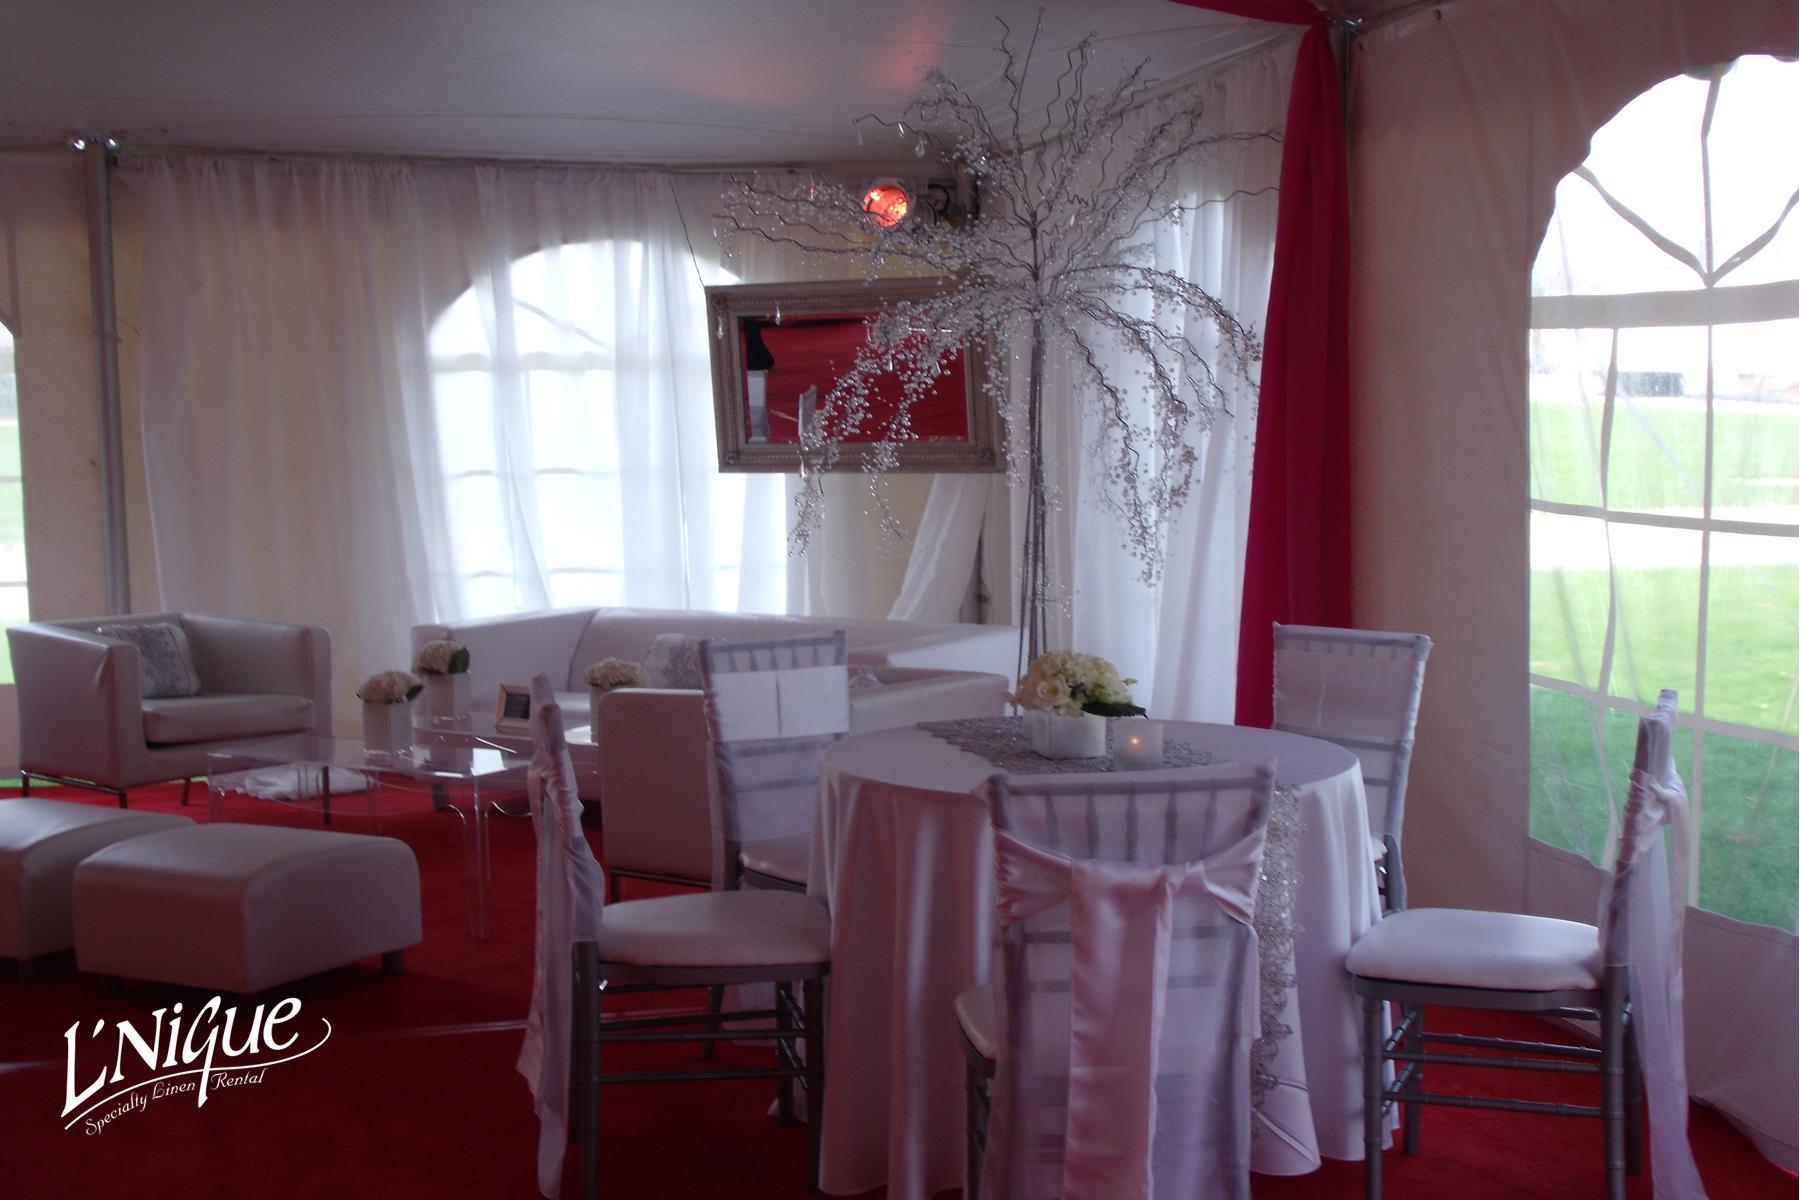 chair covers rental cleveland ohio hanging hammock satin white tablecloth specialty linen